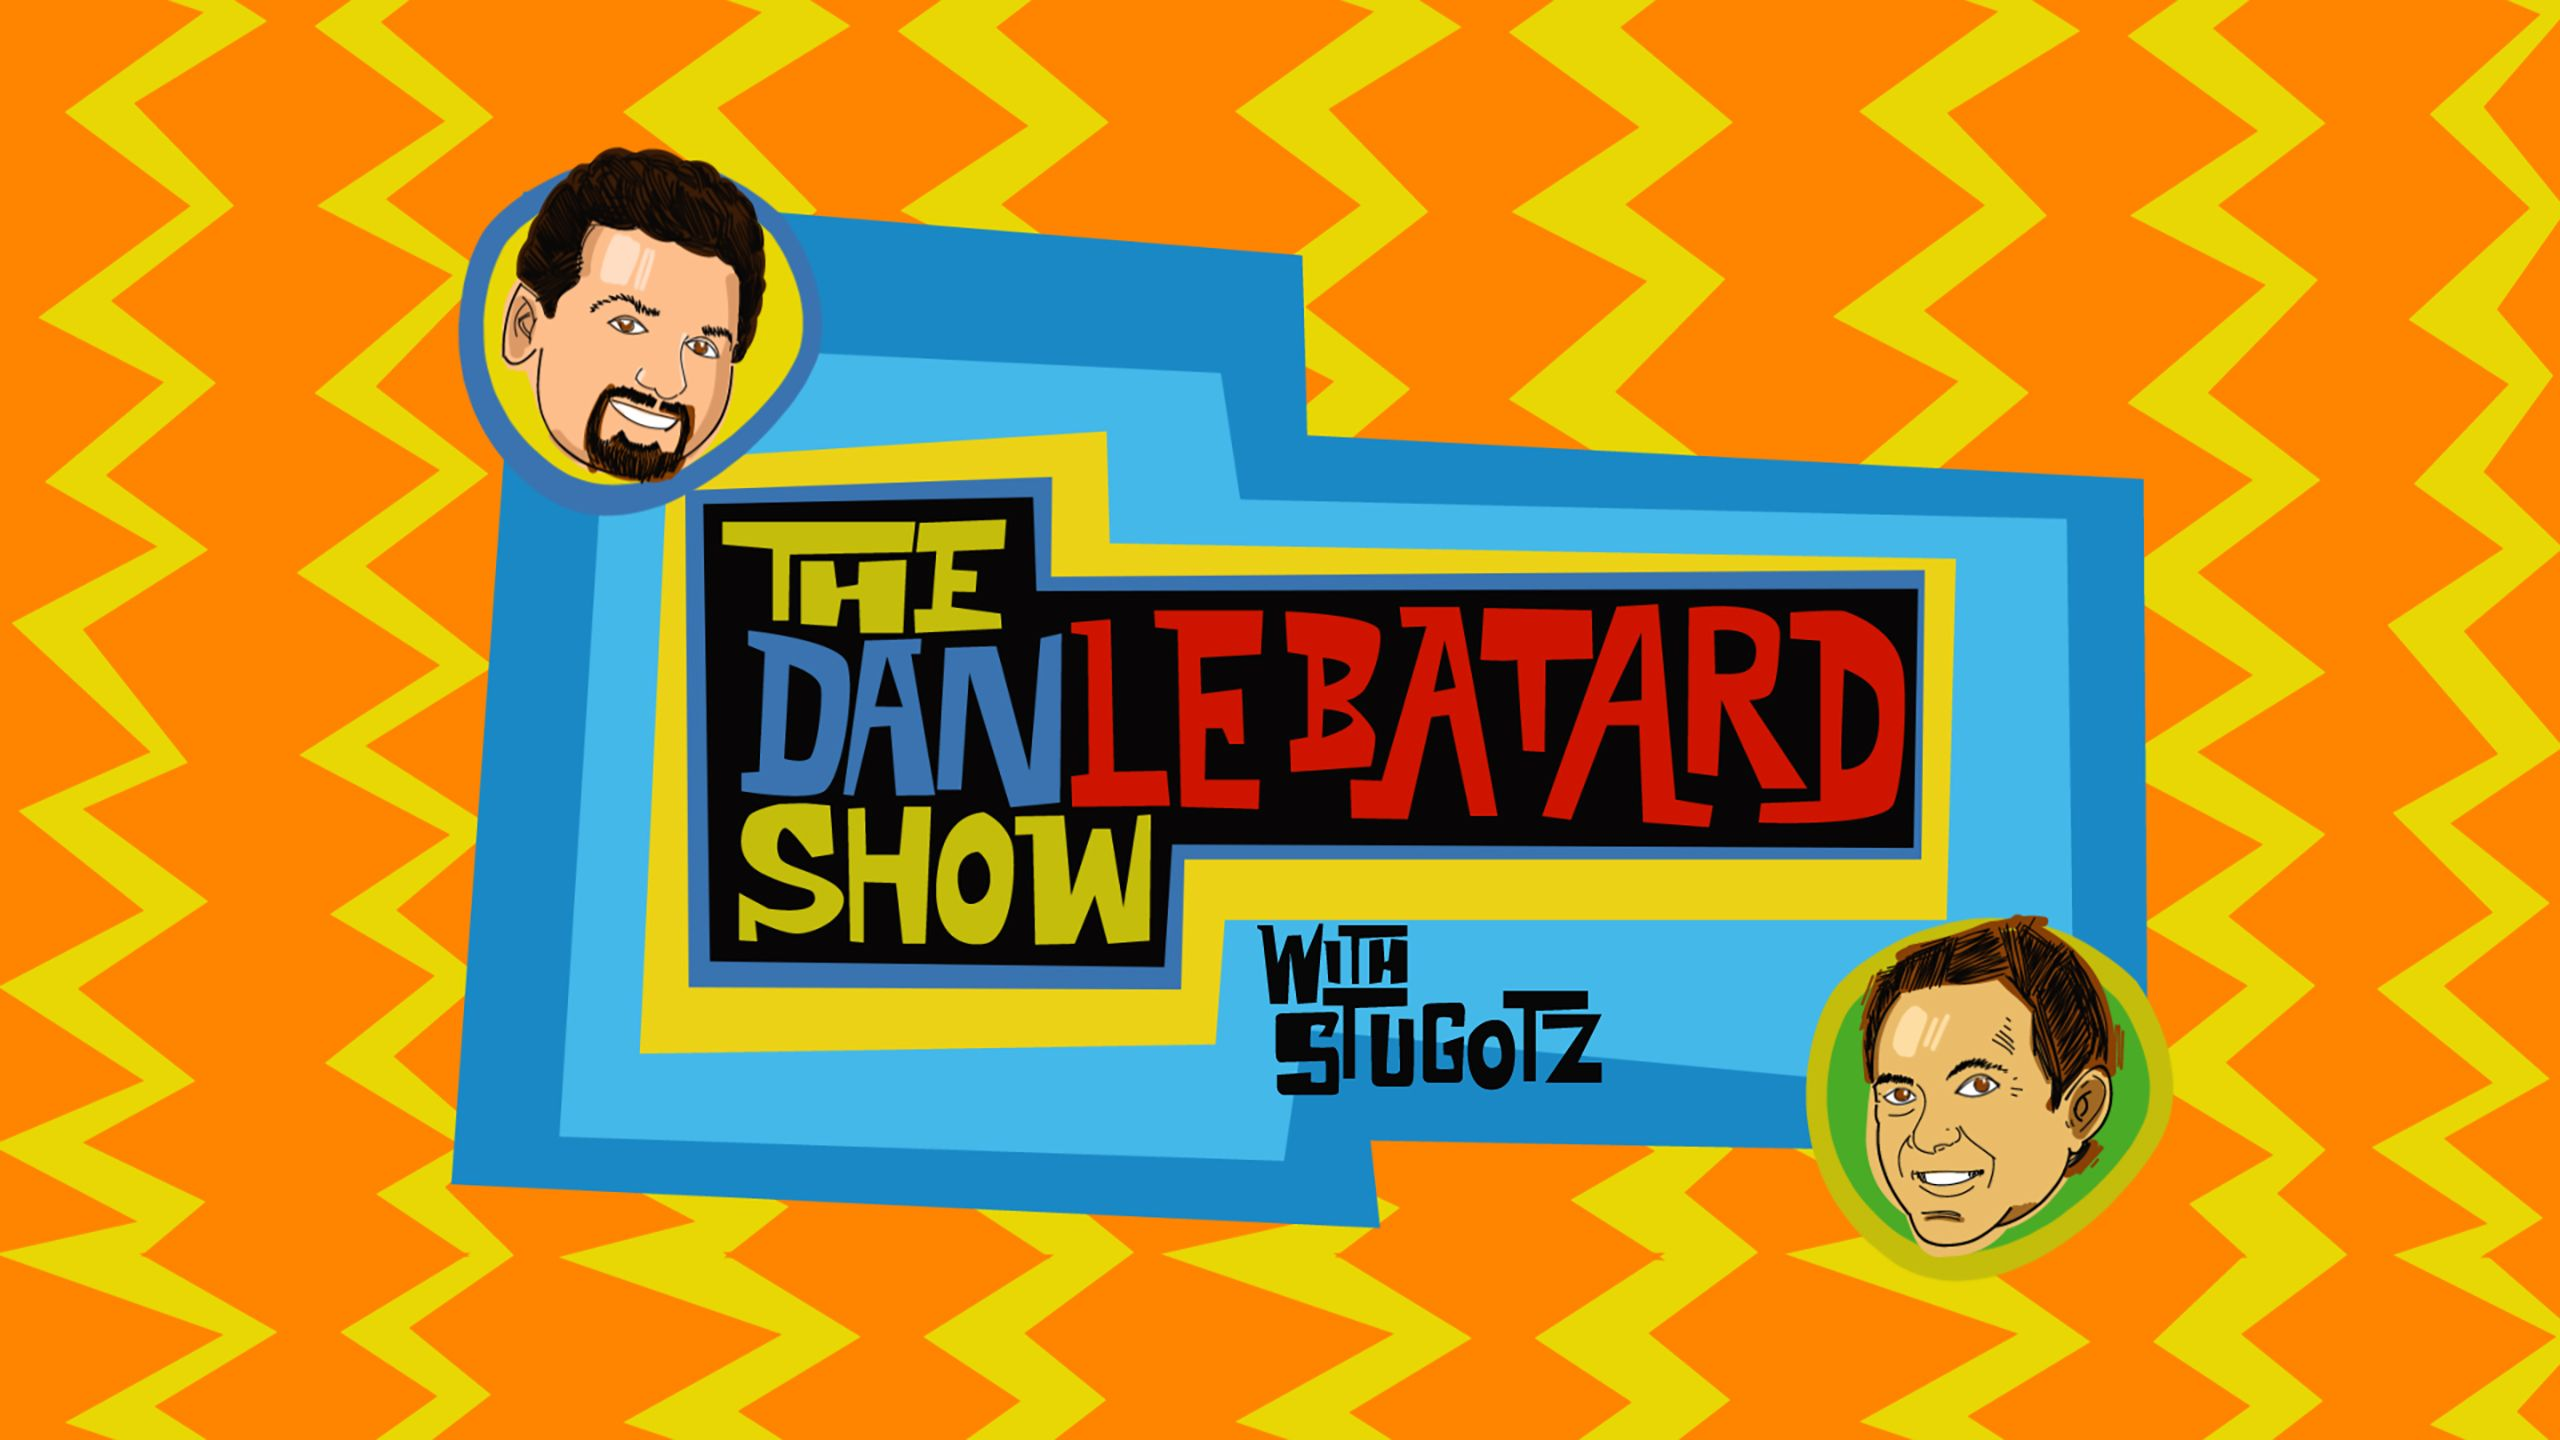 Fri, 5/18 - The Dan Le Batard Show with Stugotz Presented by Progressive